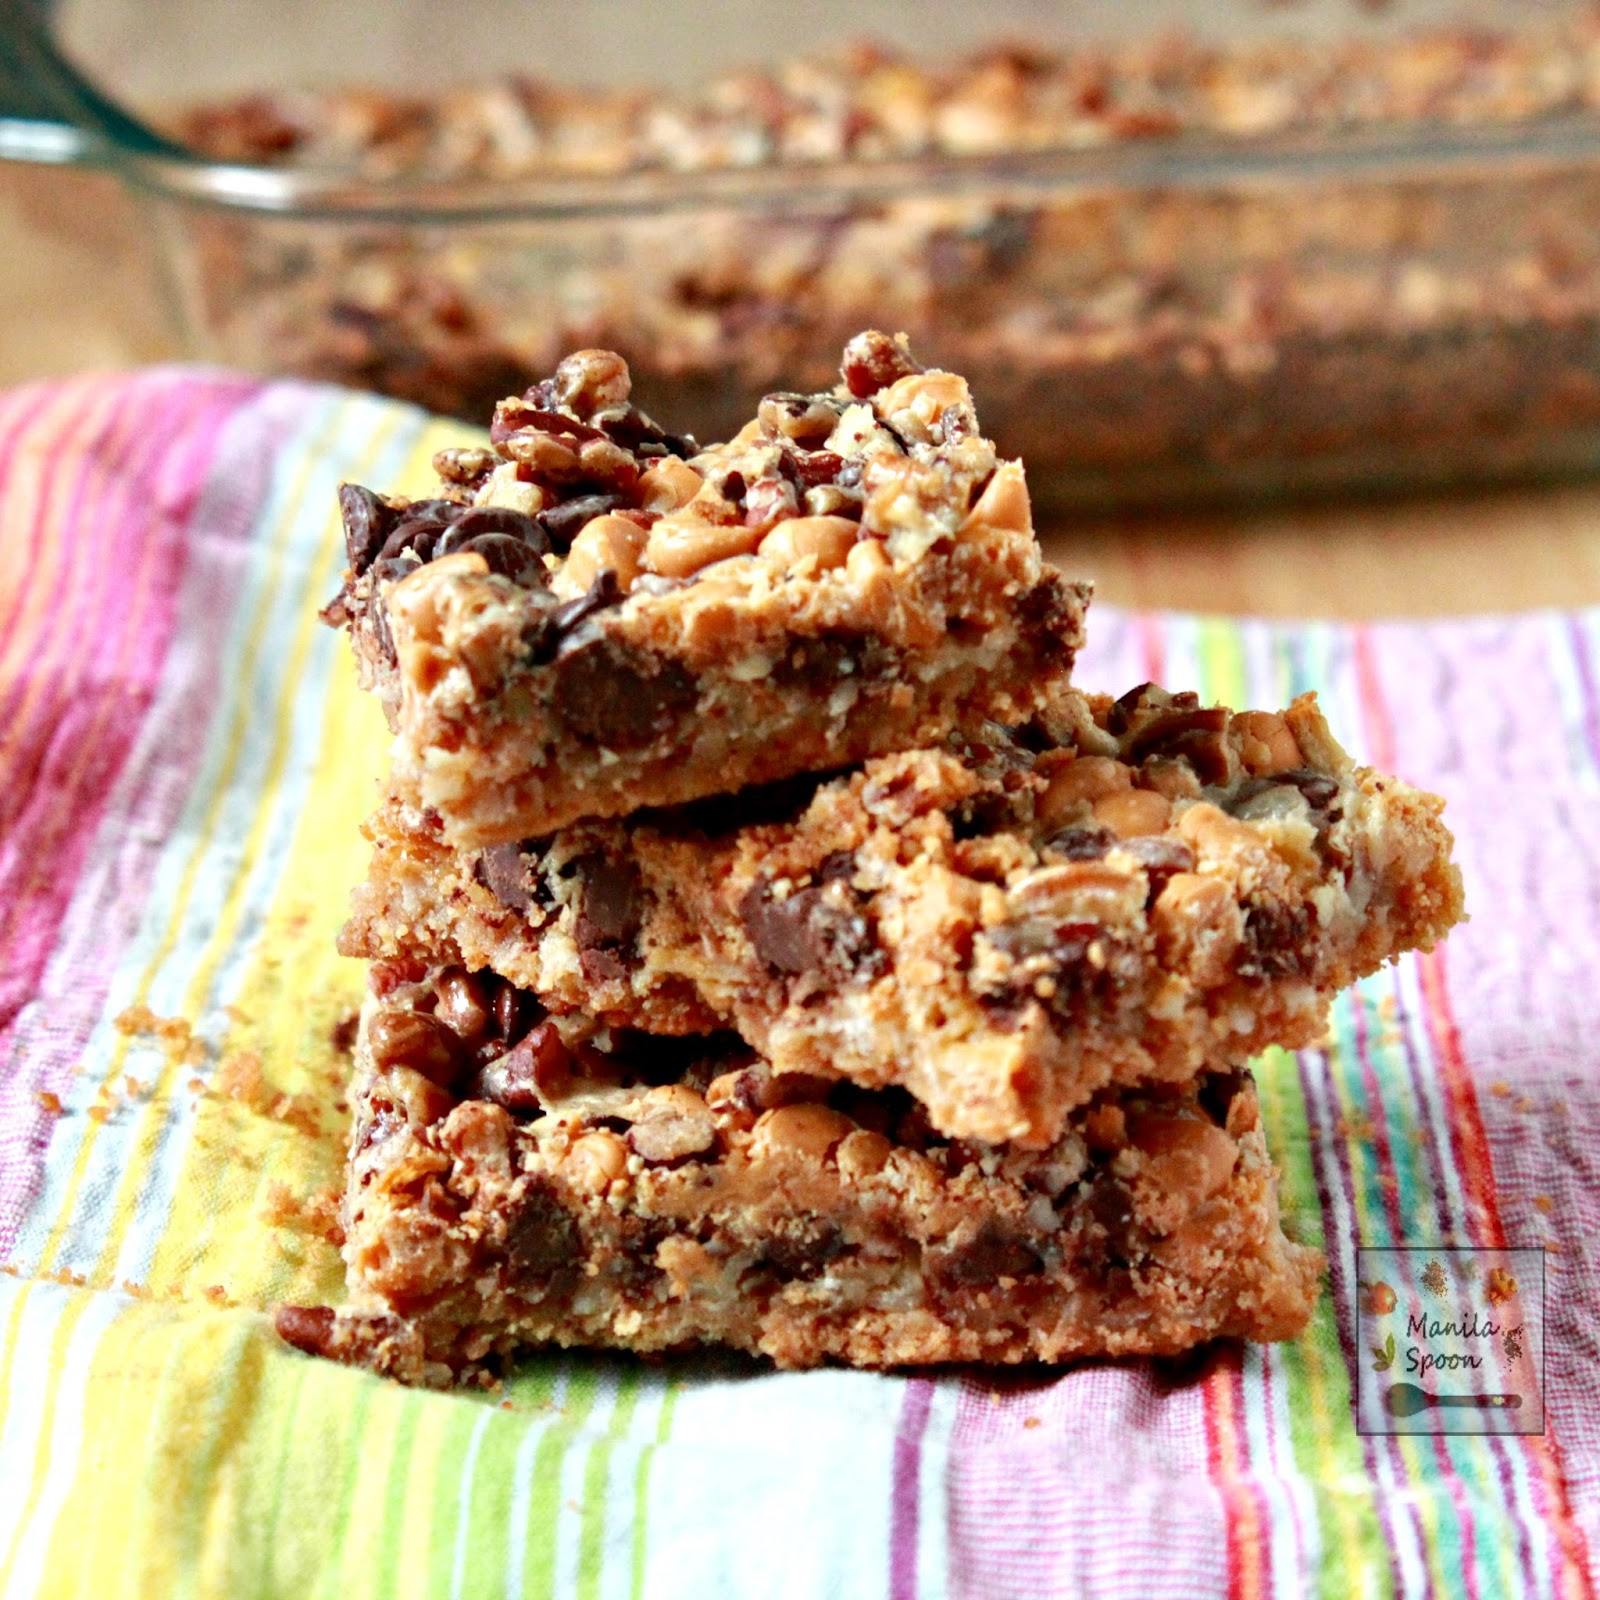 These cookie bars are truly so delicious and super easy to make!! With layers of graham crackers, coconut, pecans, butterscotch and choco chips -你的味蕾是一种美味的善待!